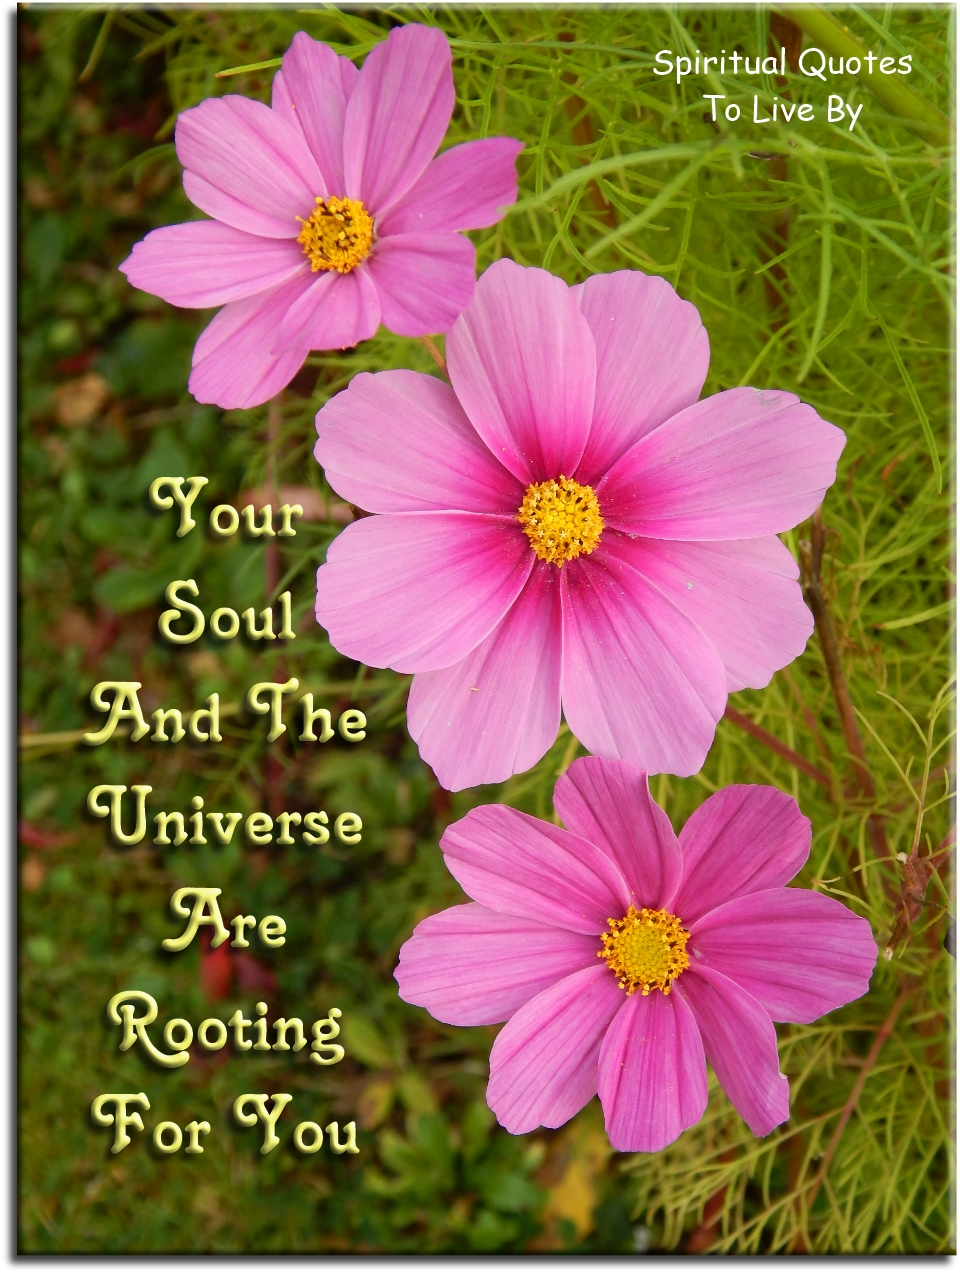 Your Soul and the Universe are rooting for you. Spiritual Quotes To Live By